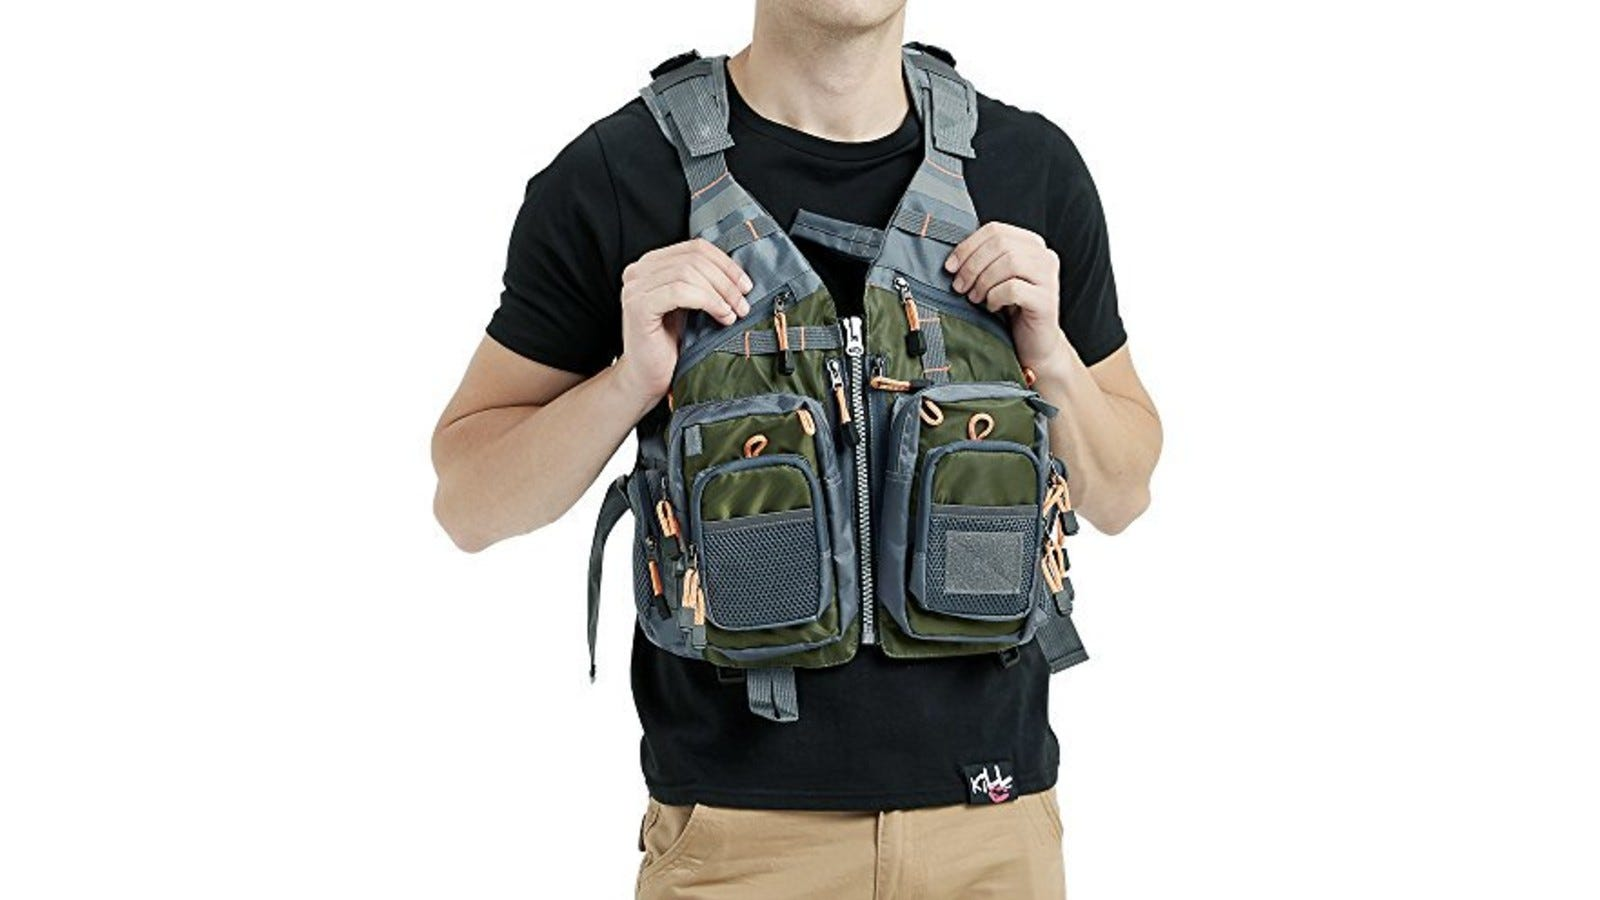 This fishing life vest has an expandable storage function